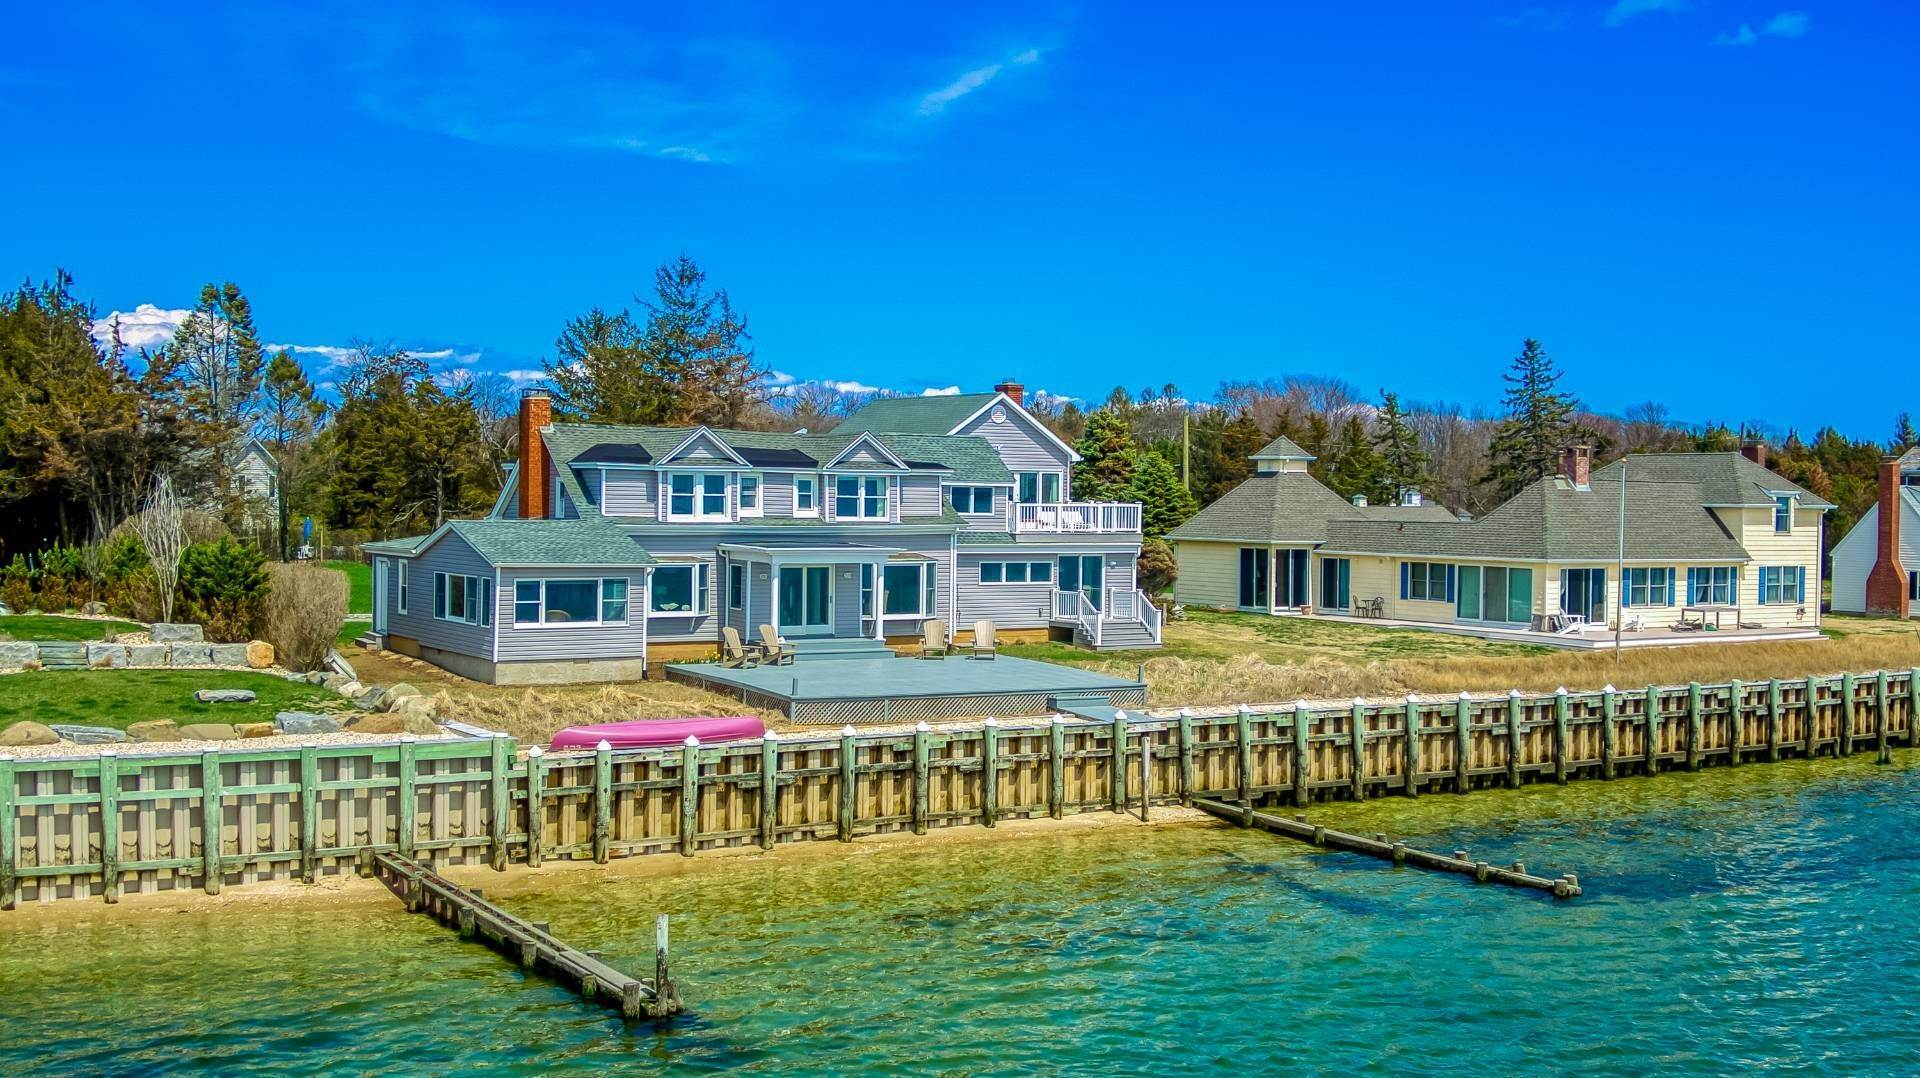 Single Family Home for Sale at Spectacular Southold Bayfront 380 Midway Rd, Southold, NY 11971